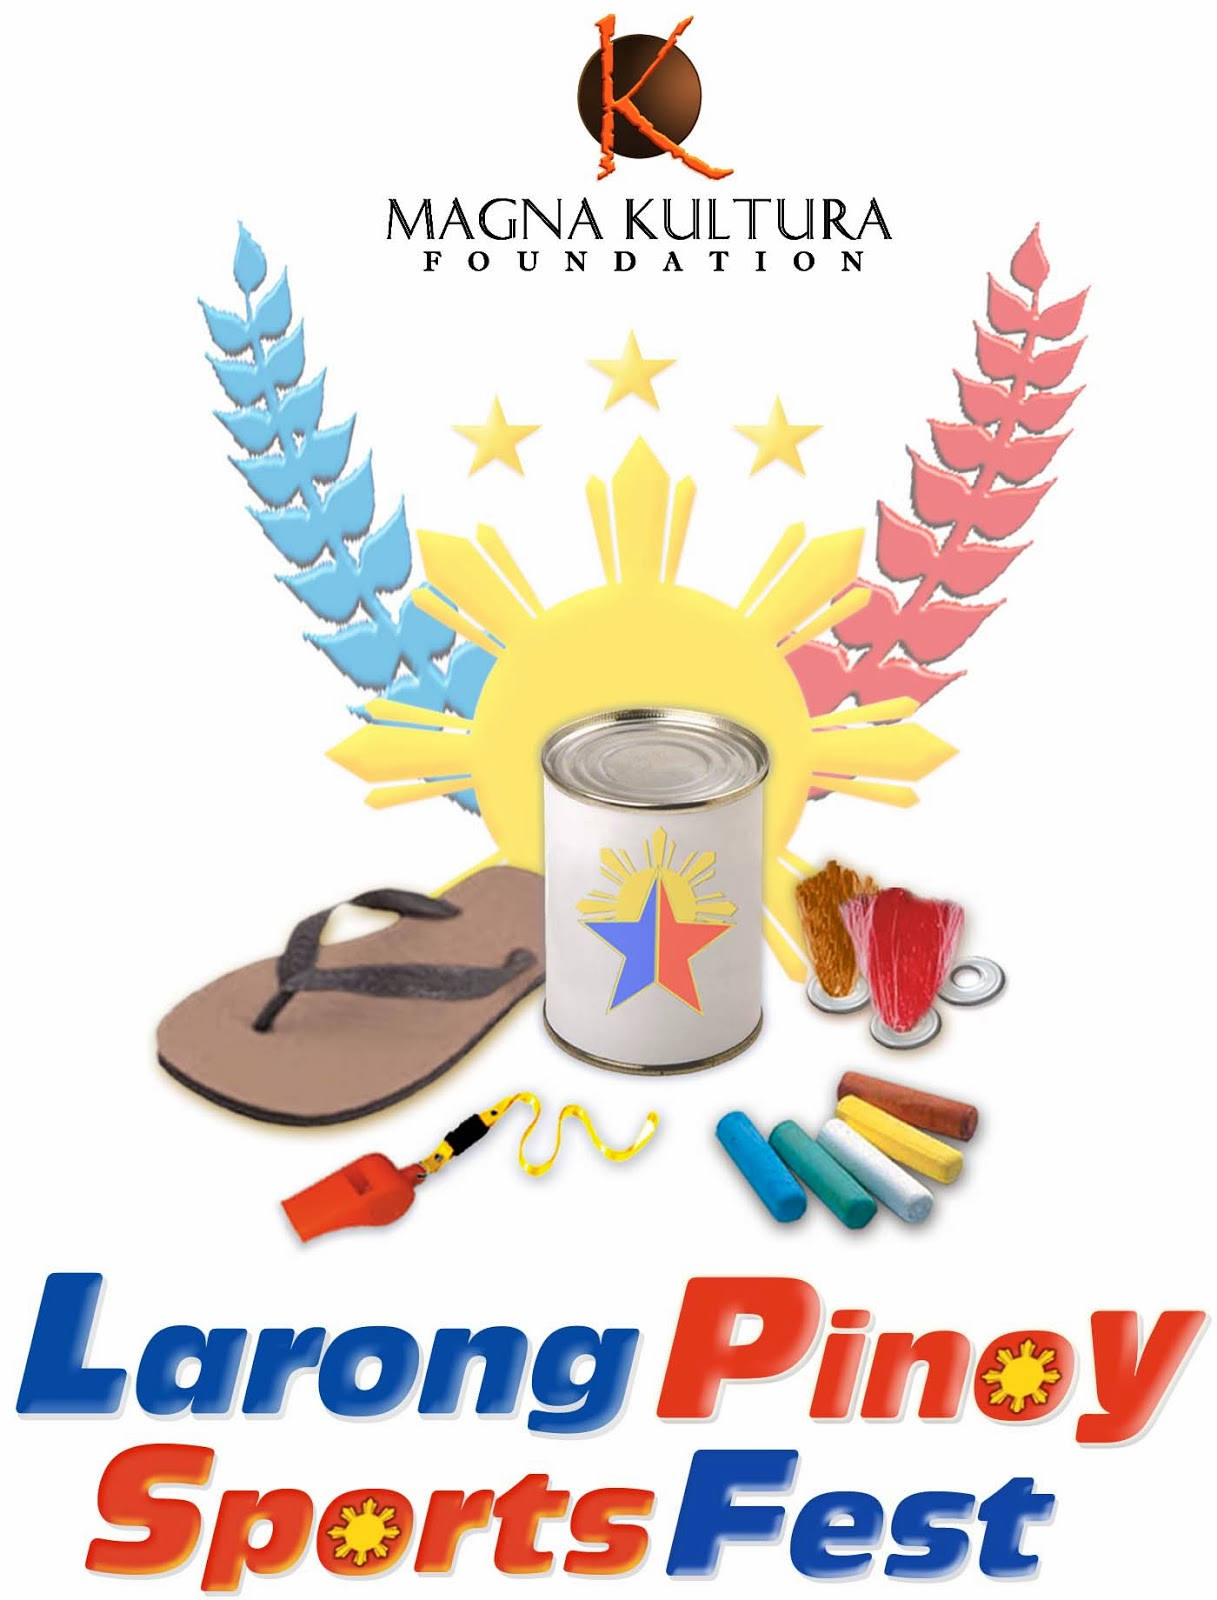 larong pinoy games essay Larong pinoy is the games of our heritage ( laro ng lahi ) it is a cultural treasure ( yaman ng lahi ) cherished by generations of filipinos it favorite past-time that is close to the hearts of filipinos, encompassing generations --- from our grandparents, to our parents, and among the youth & toddlers of today.